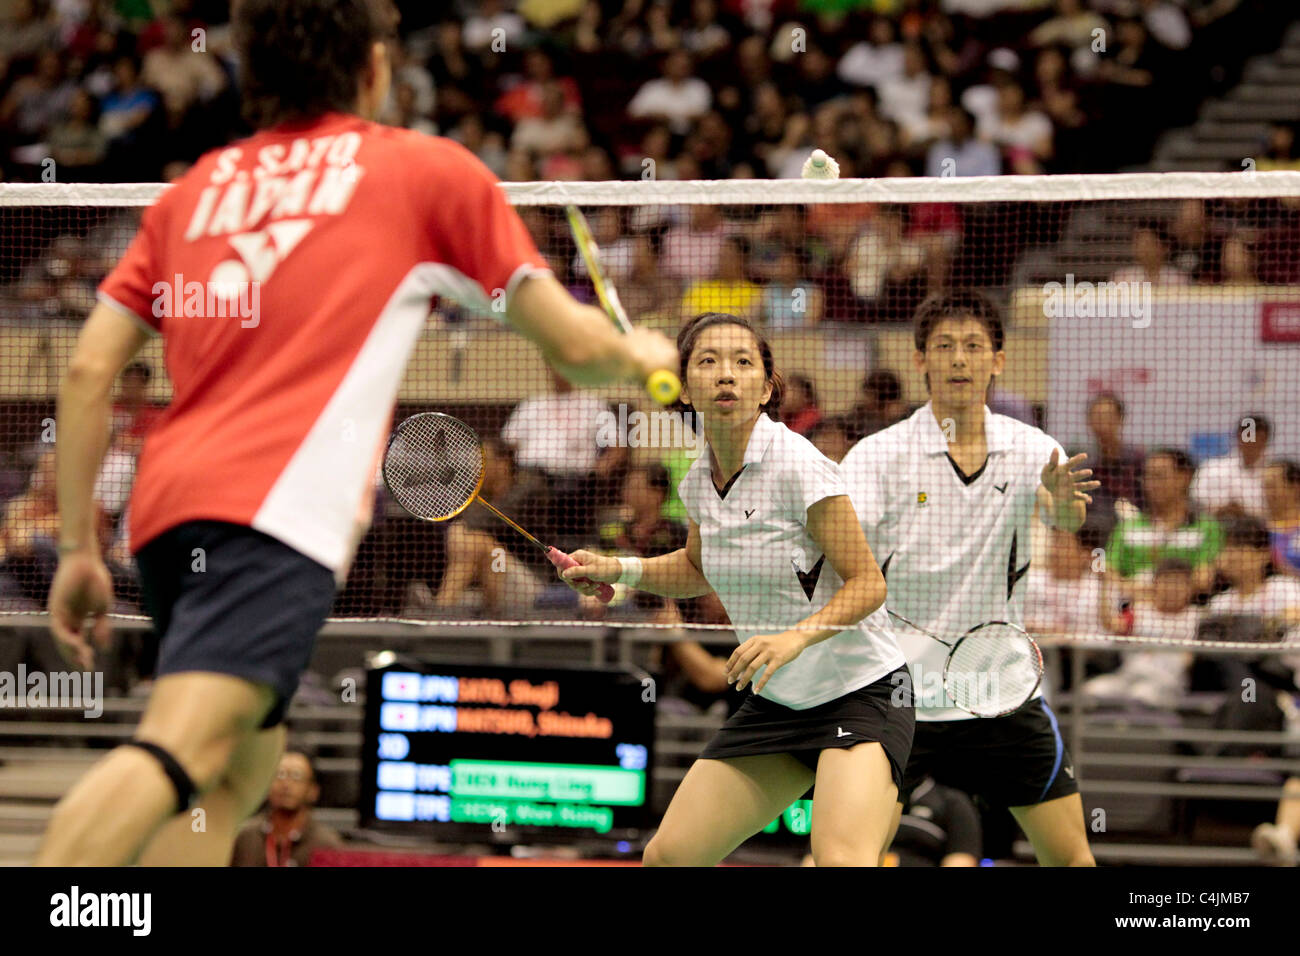 Cheng Wen Hsing and Chen Hung Ling of Chinese Taipei in the Mixed